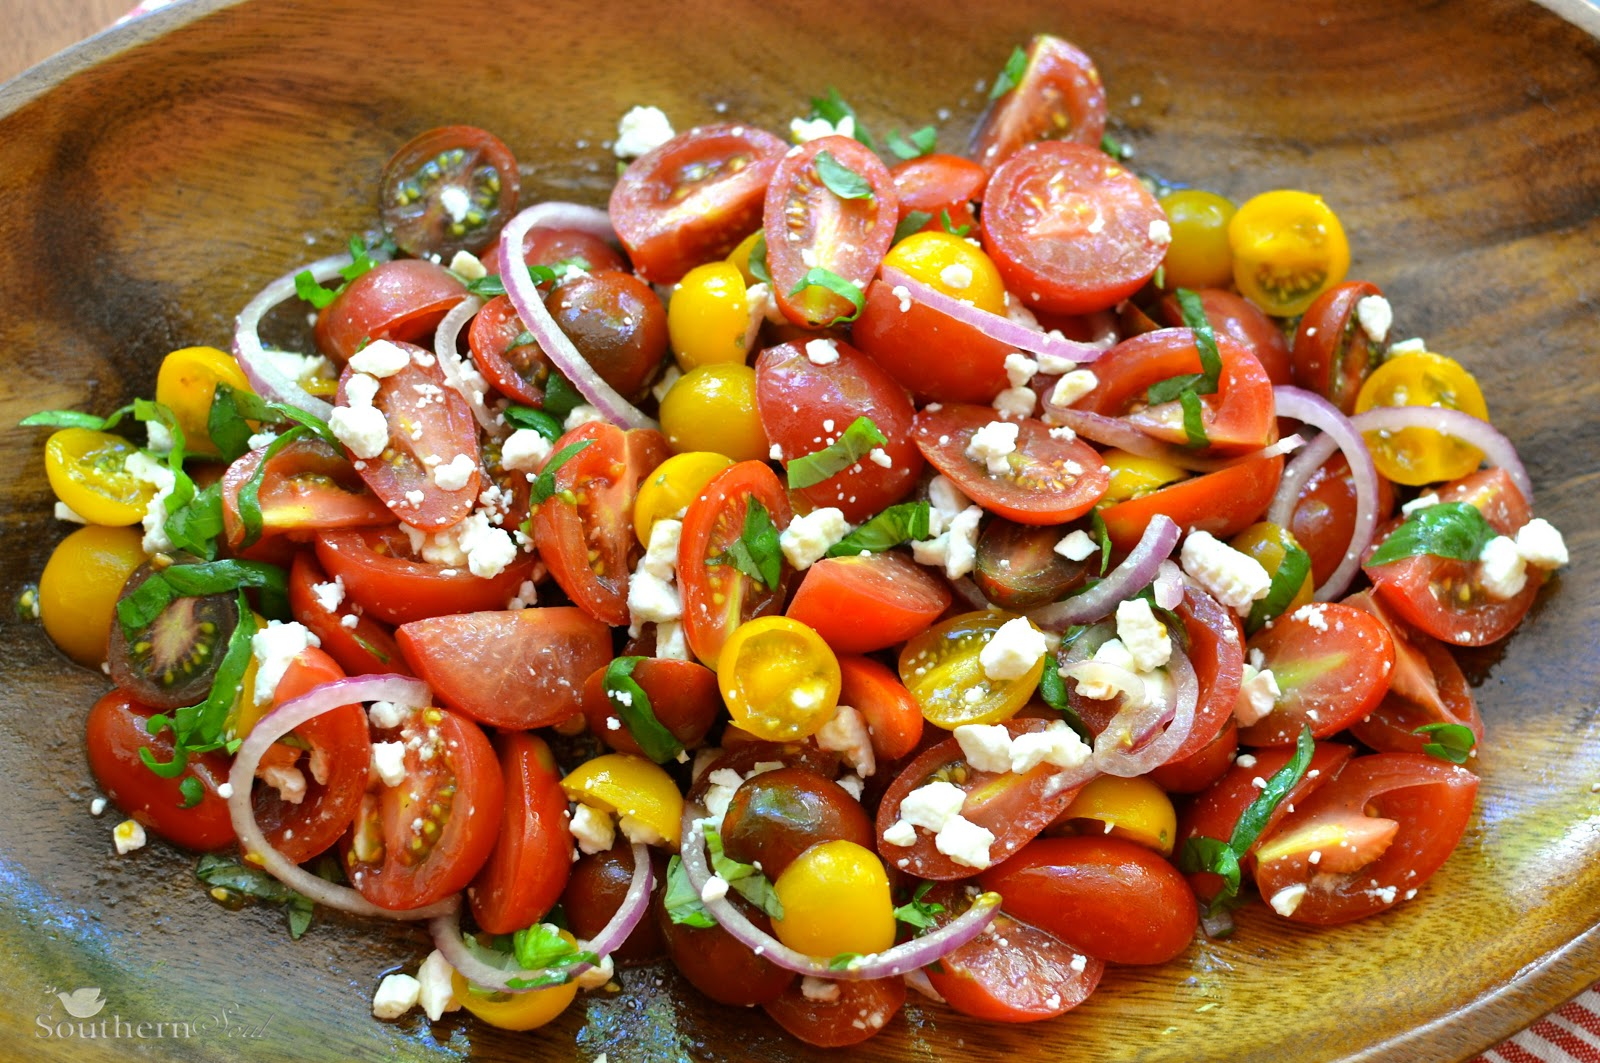 Southern Soul: Heirloom Tomato Salad